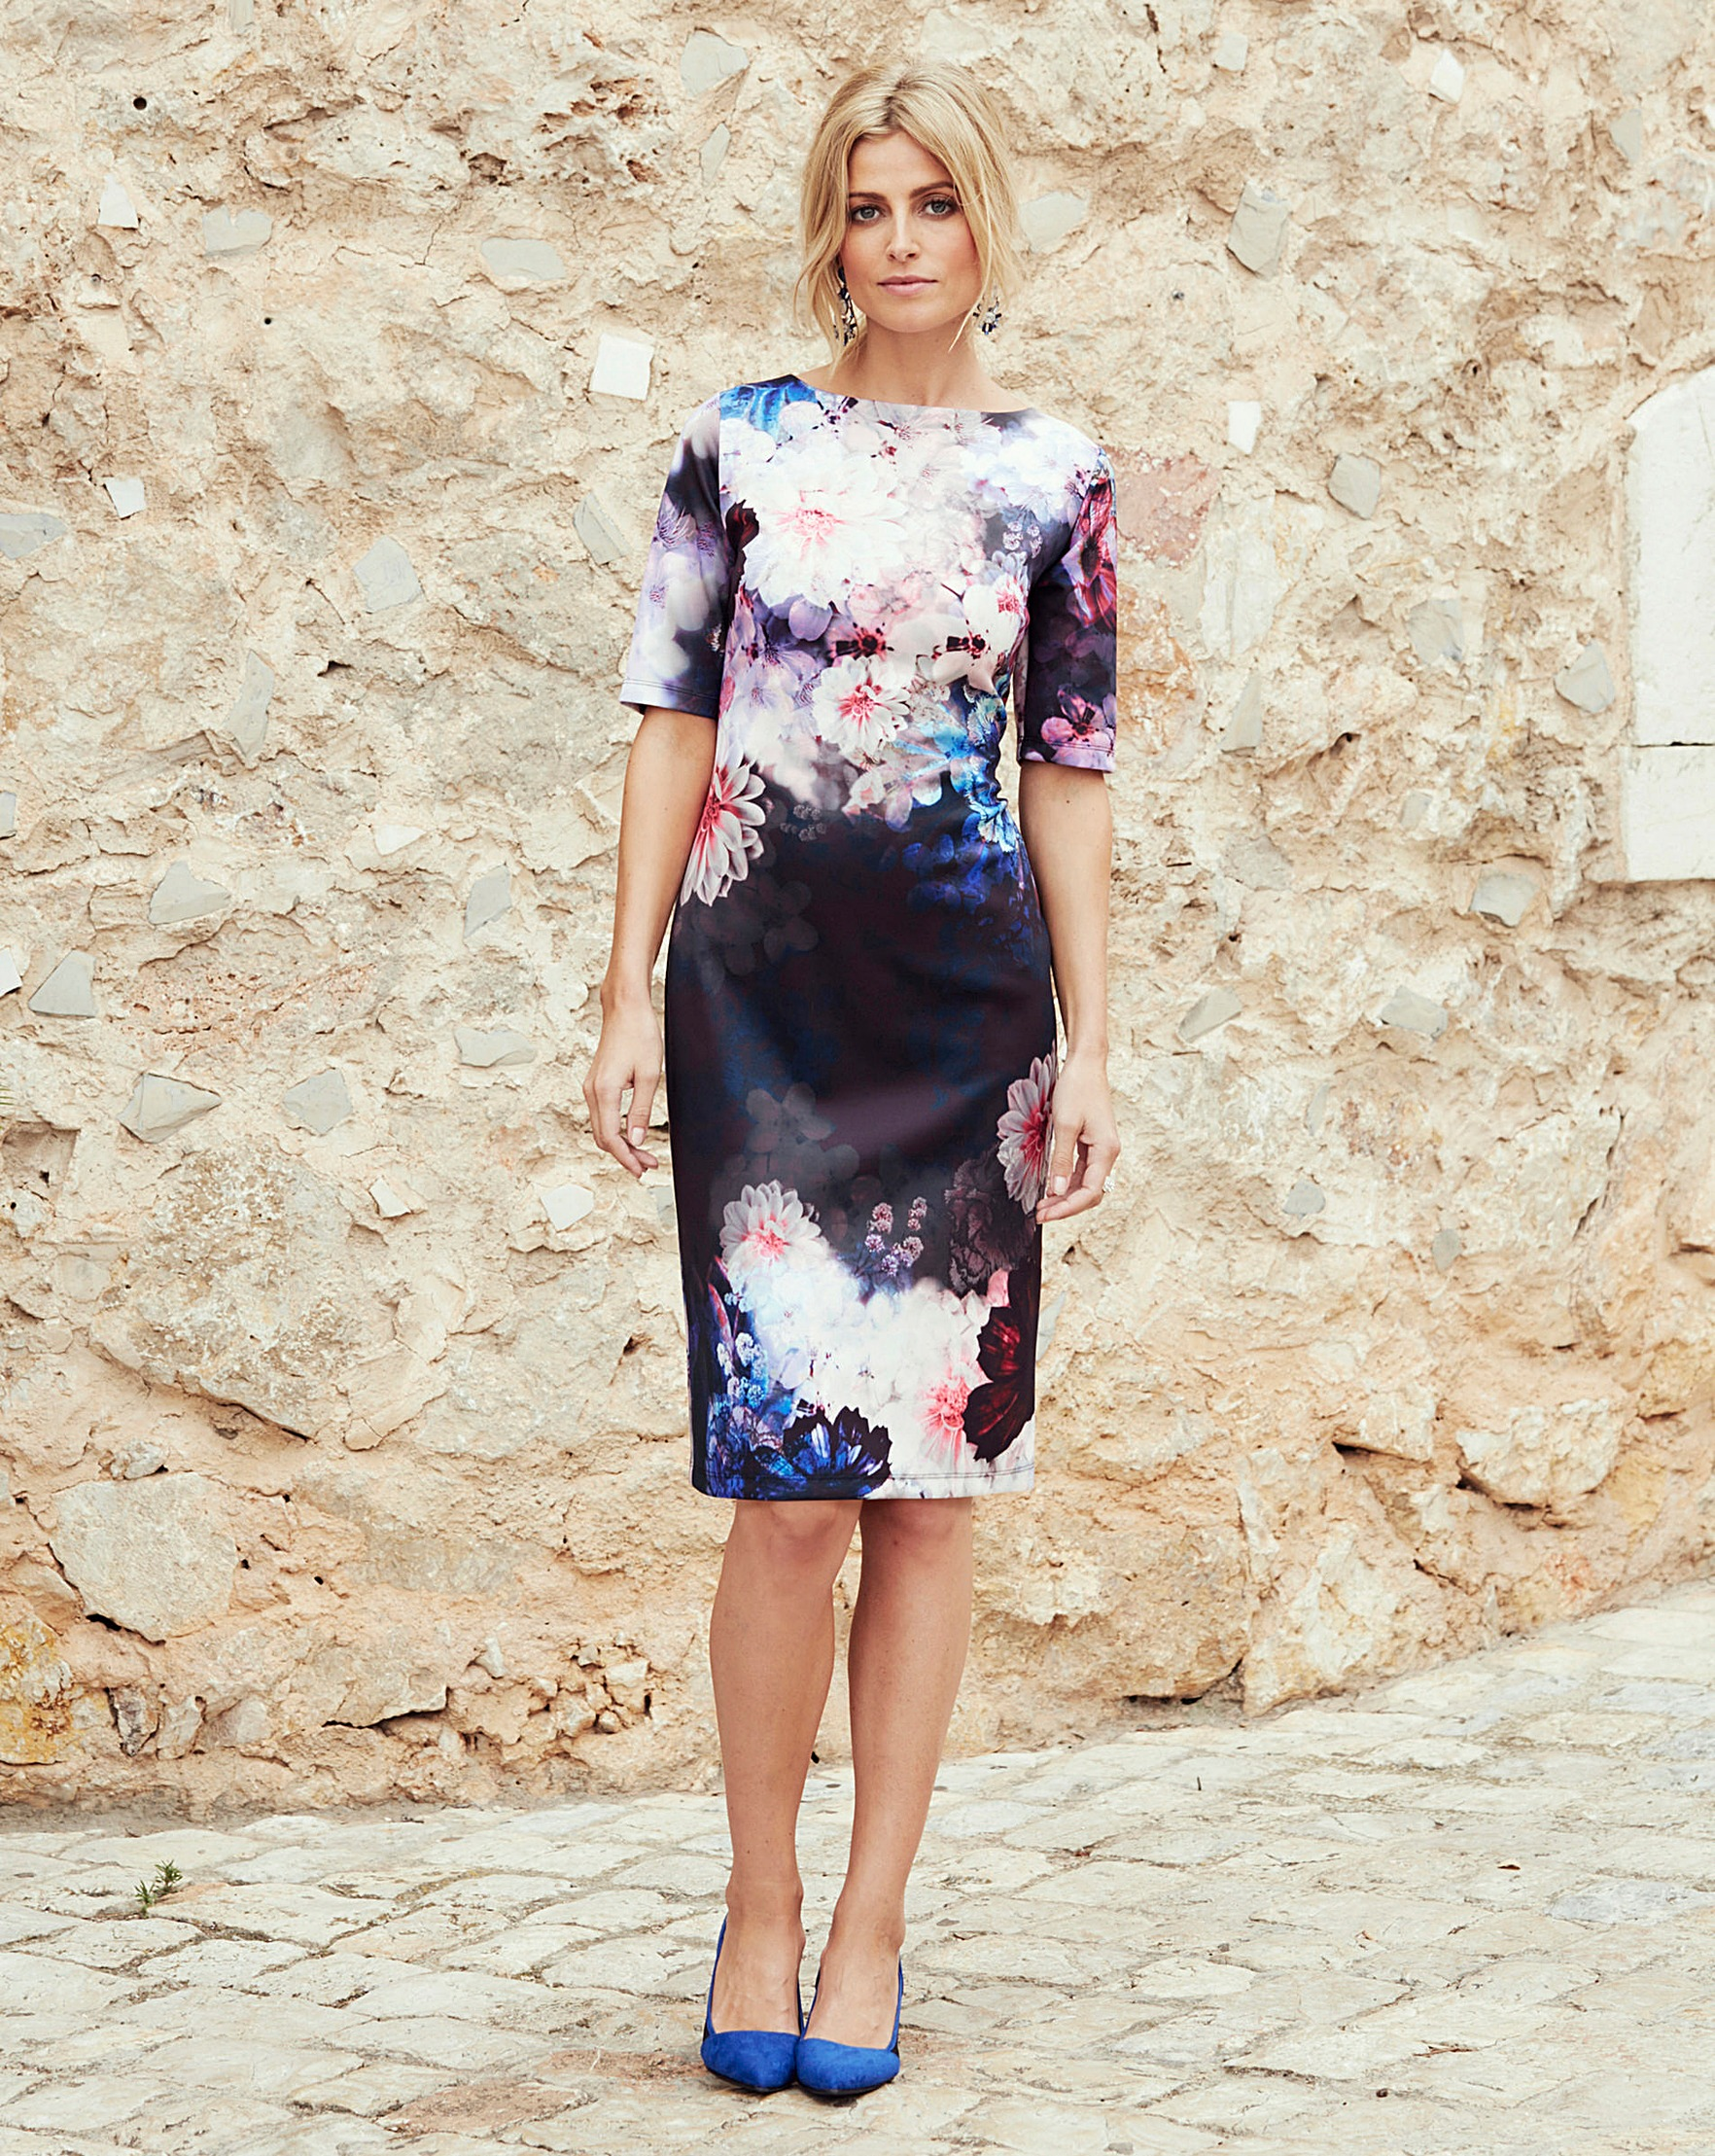 Oxendales Dresses